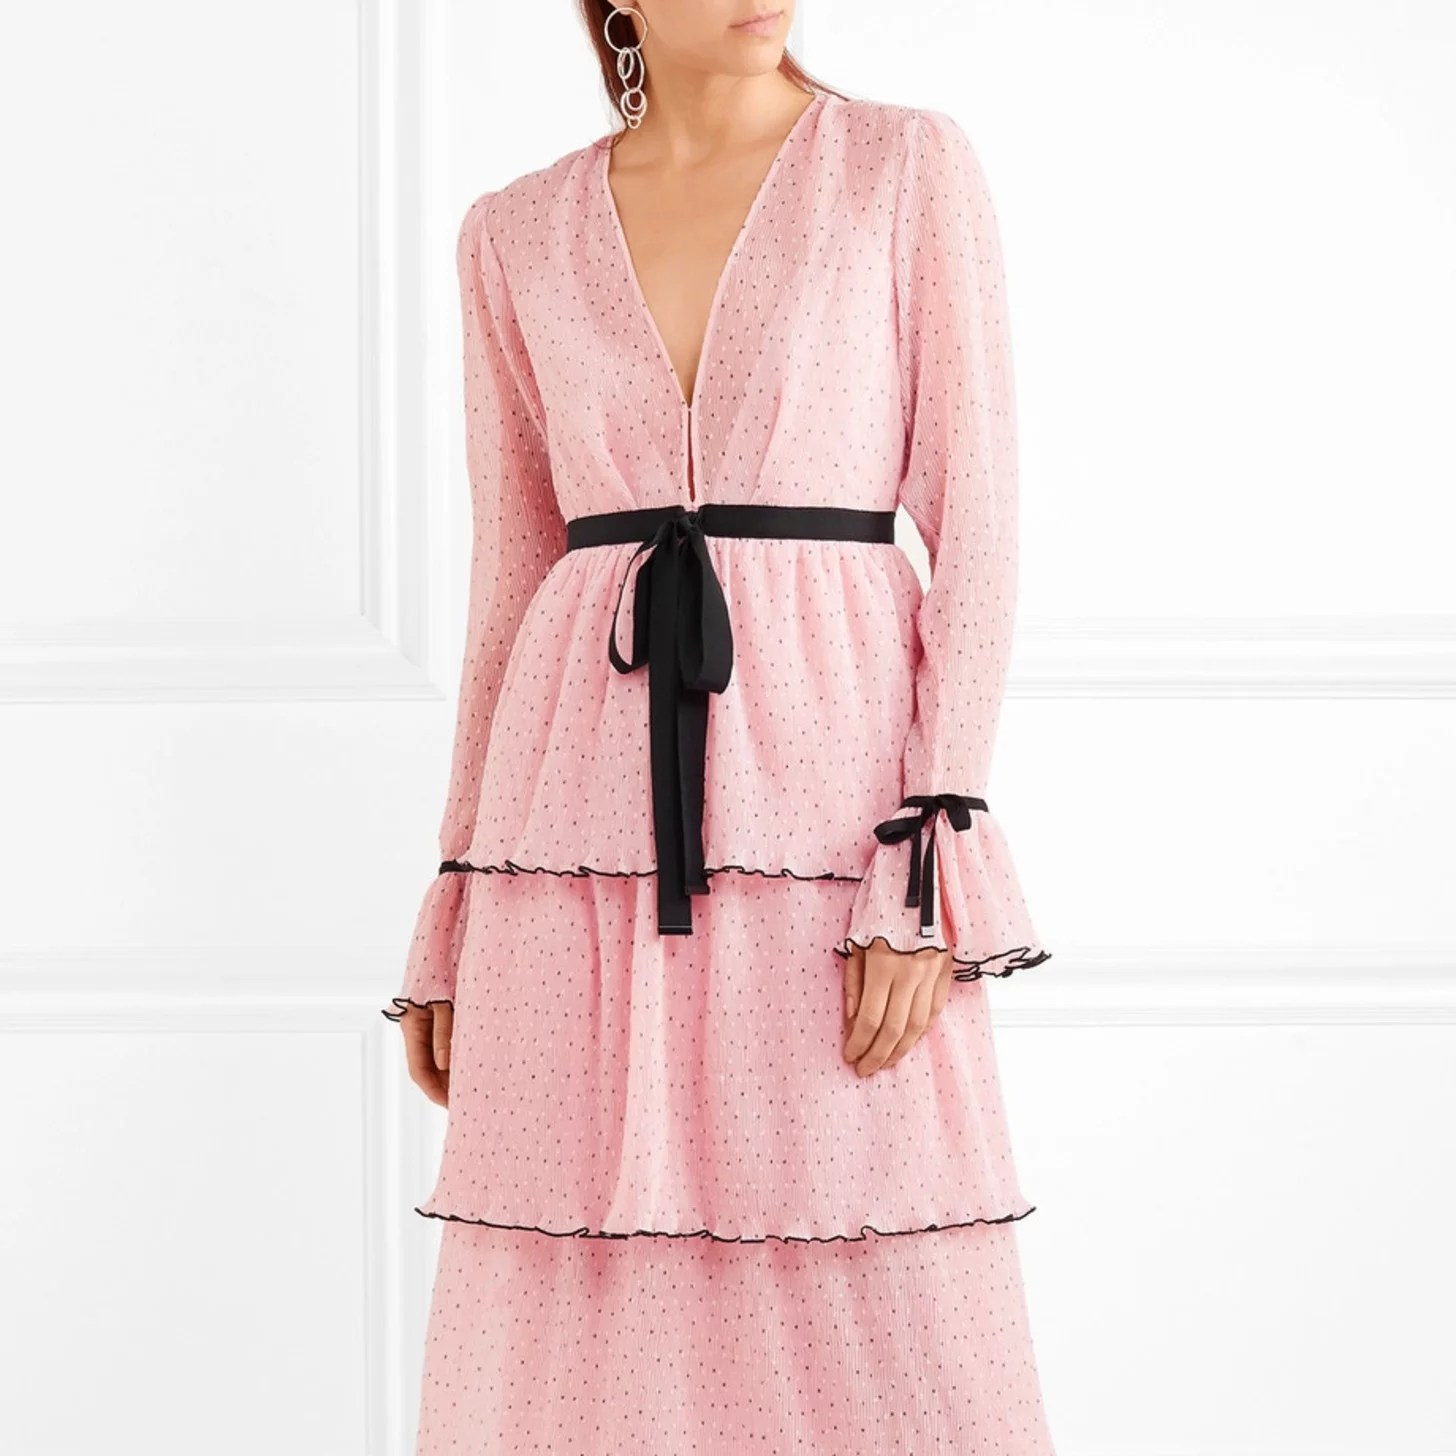 Noble Summer All Body Types Wedding Guest Dresses Wedding Guest Dresses Early Spring Summer All Body Types Popsugarfashion Uk Wedding Guest Dresses Spring Spring Pinterest Wedding Guest Dresses Spring wedding dress Wedding Guest Dresses For Spring